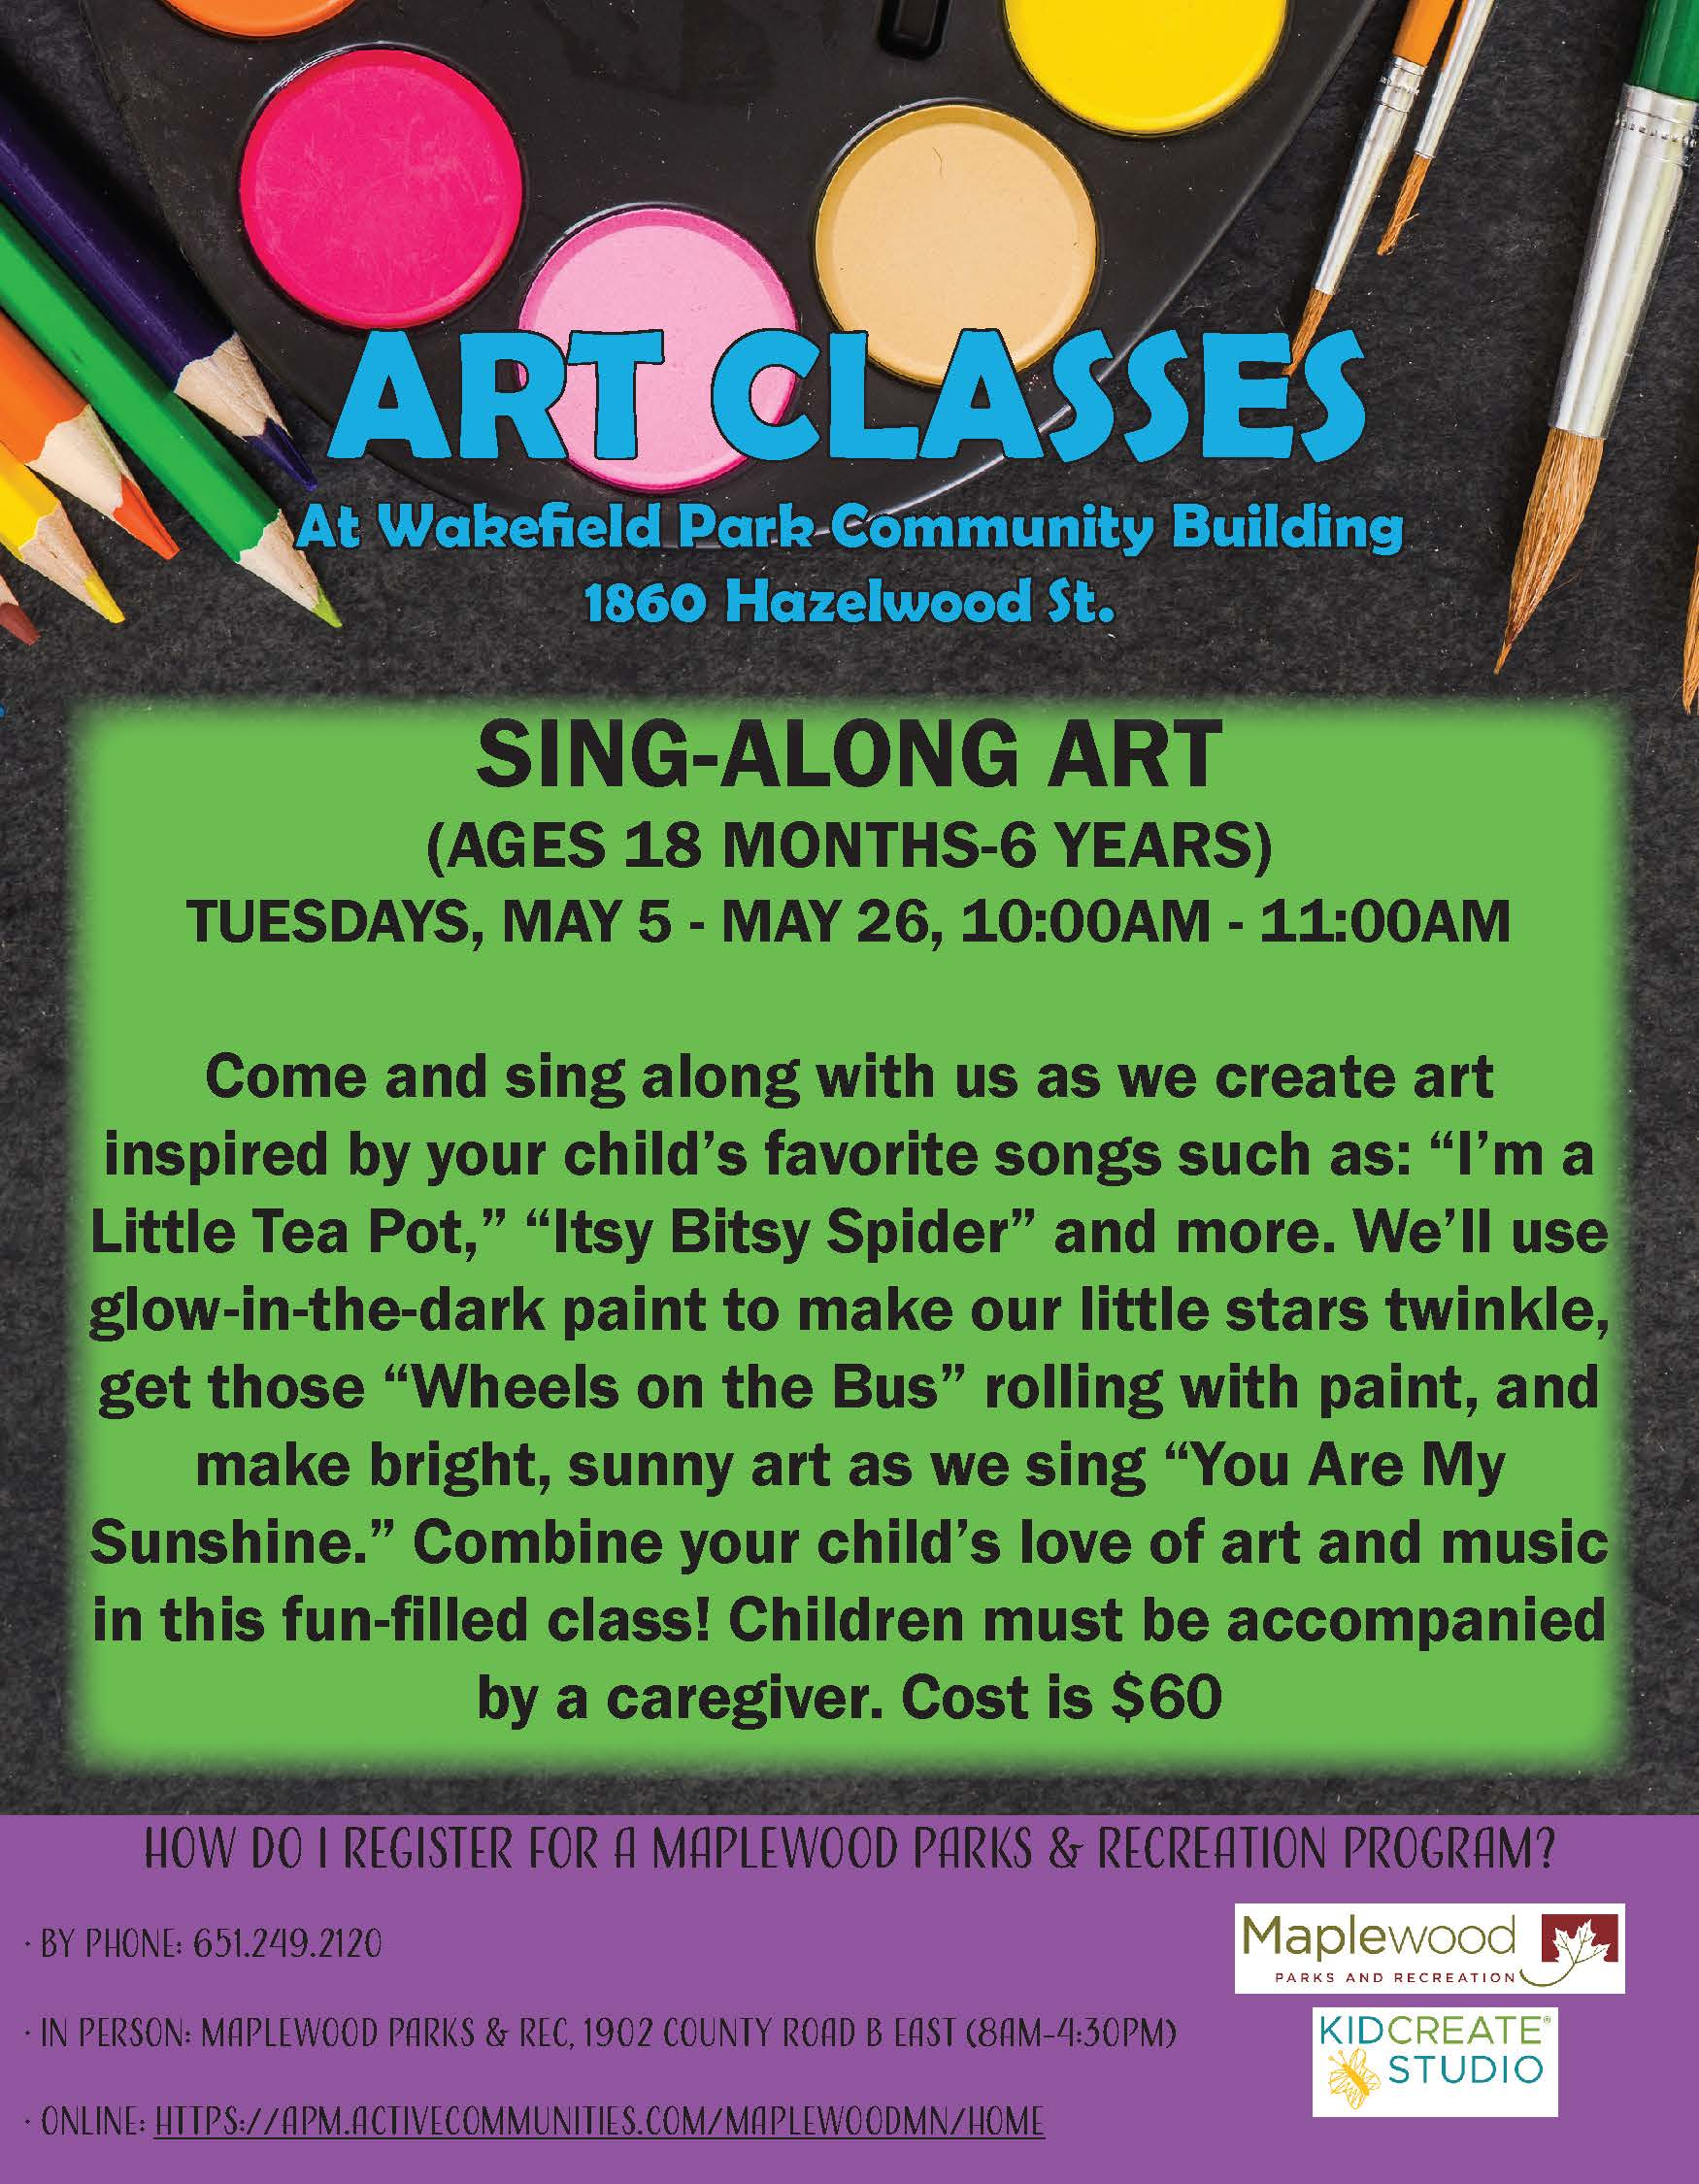 Preschool Art Classes at Wakefield Park Community Building Ages 18 months-6 years Cost $60